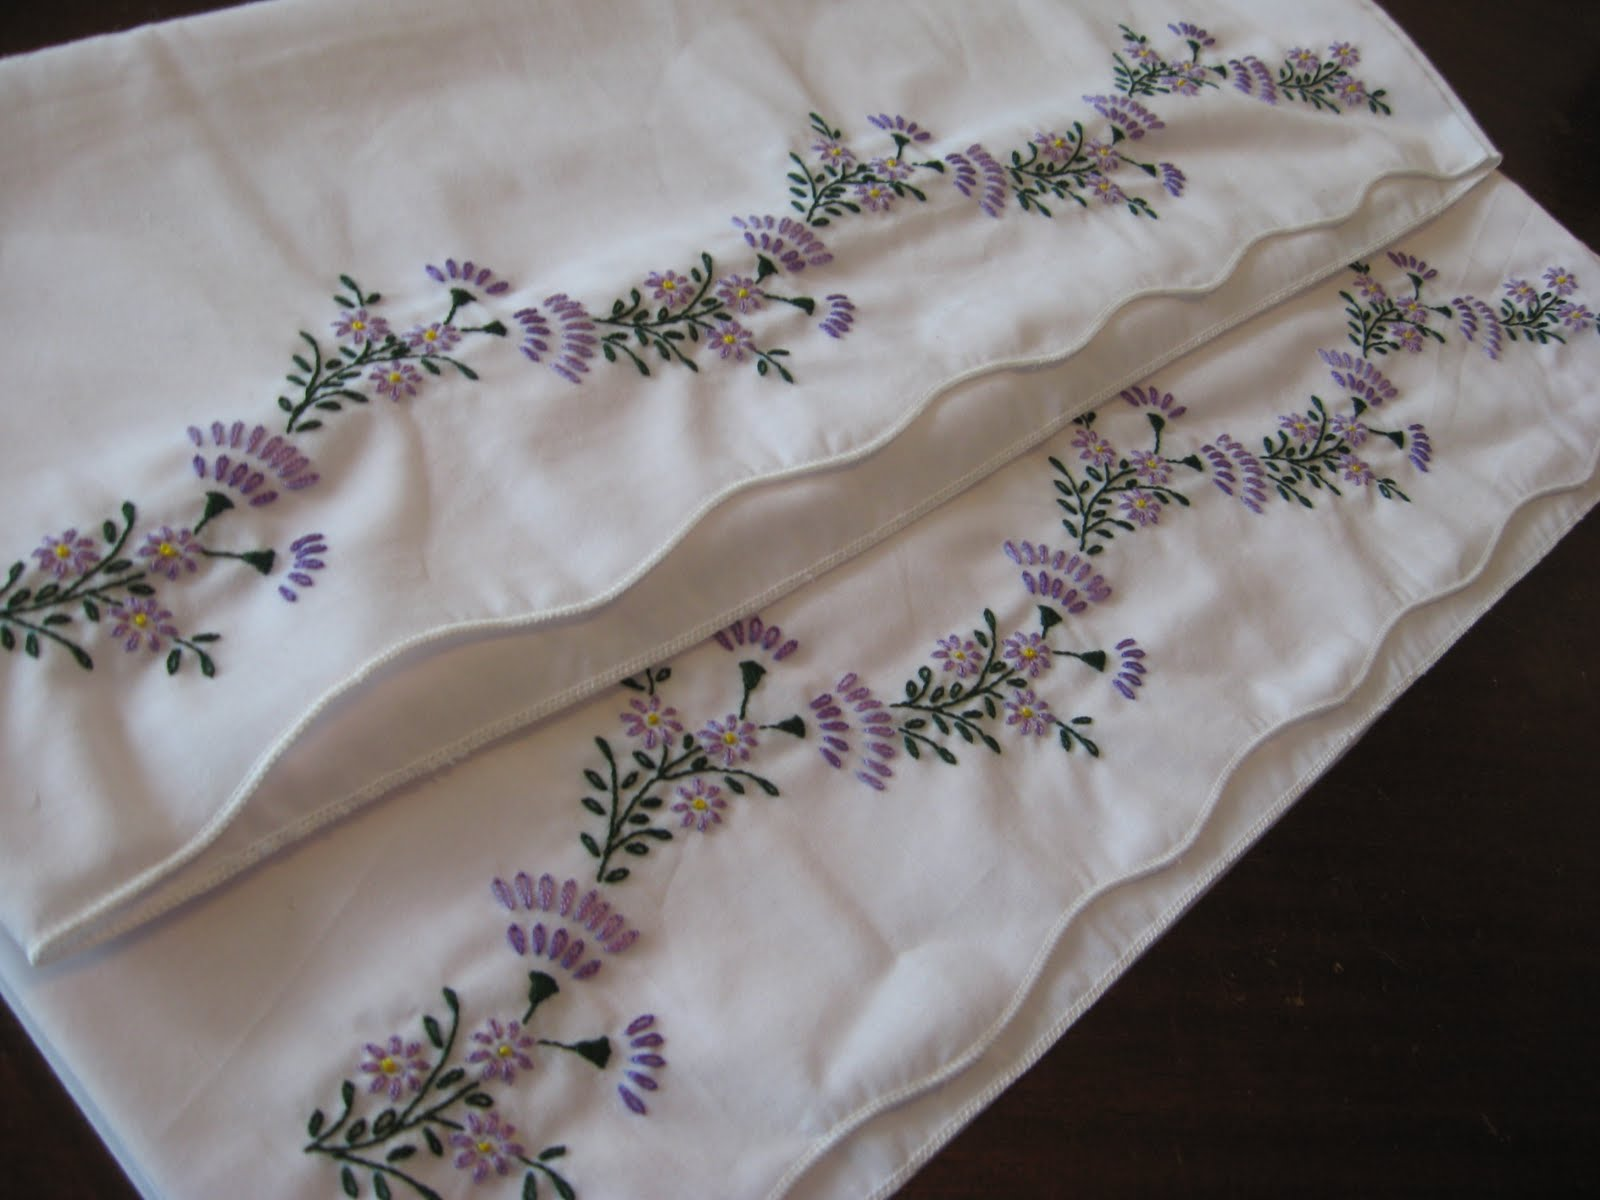 Violets Embroidered Pillowcases & Oliver\u0027s Bungalow: Violets Embroidered Pillowcases pillowsntoast.com